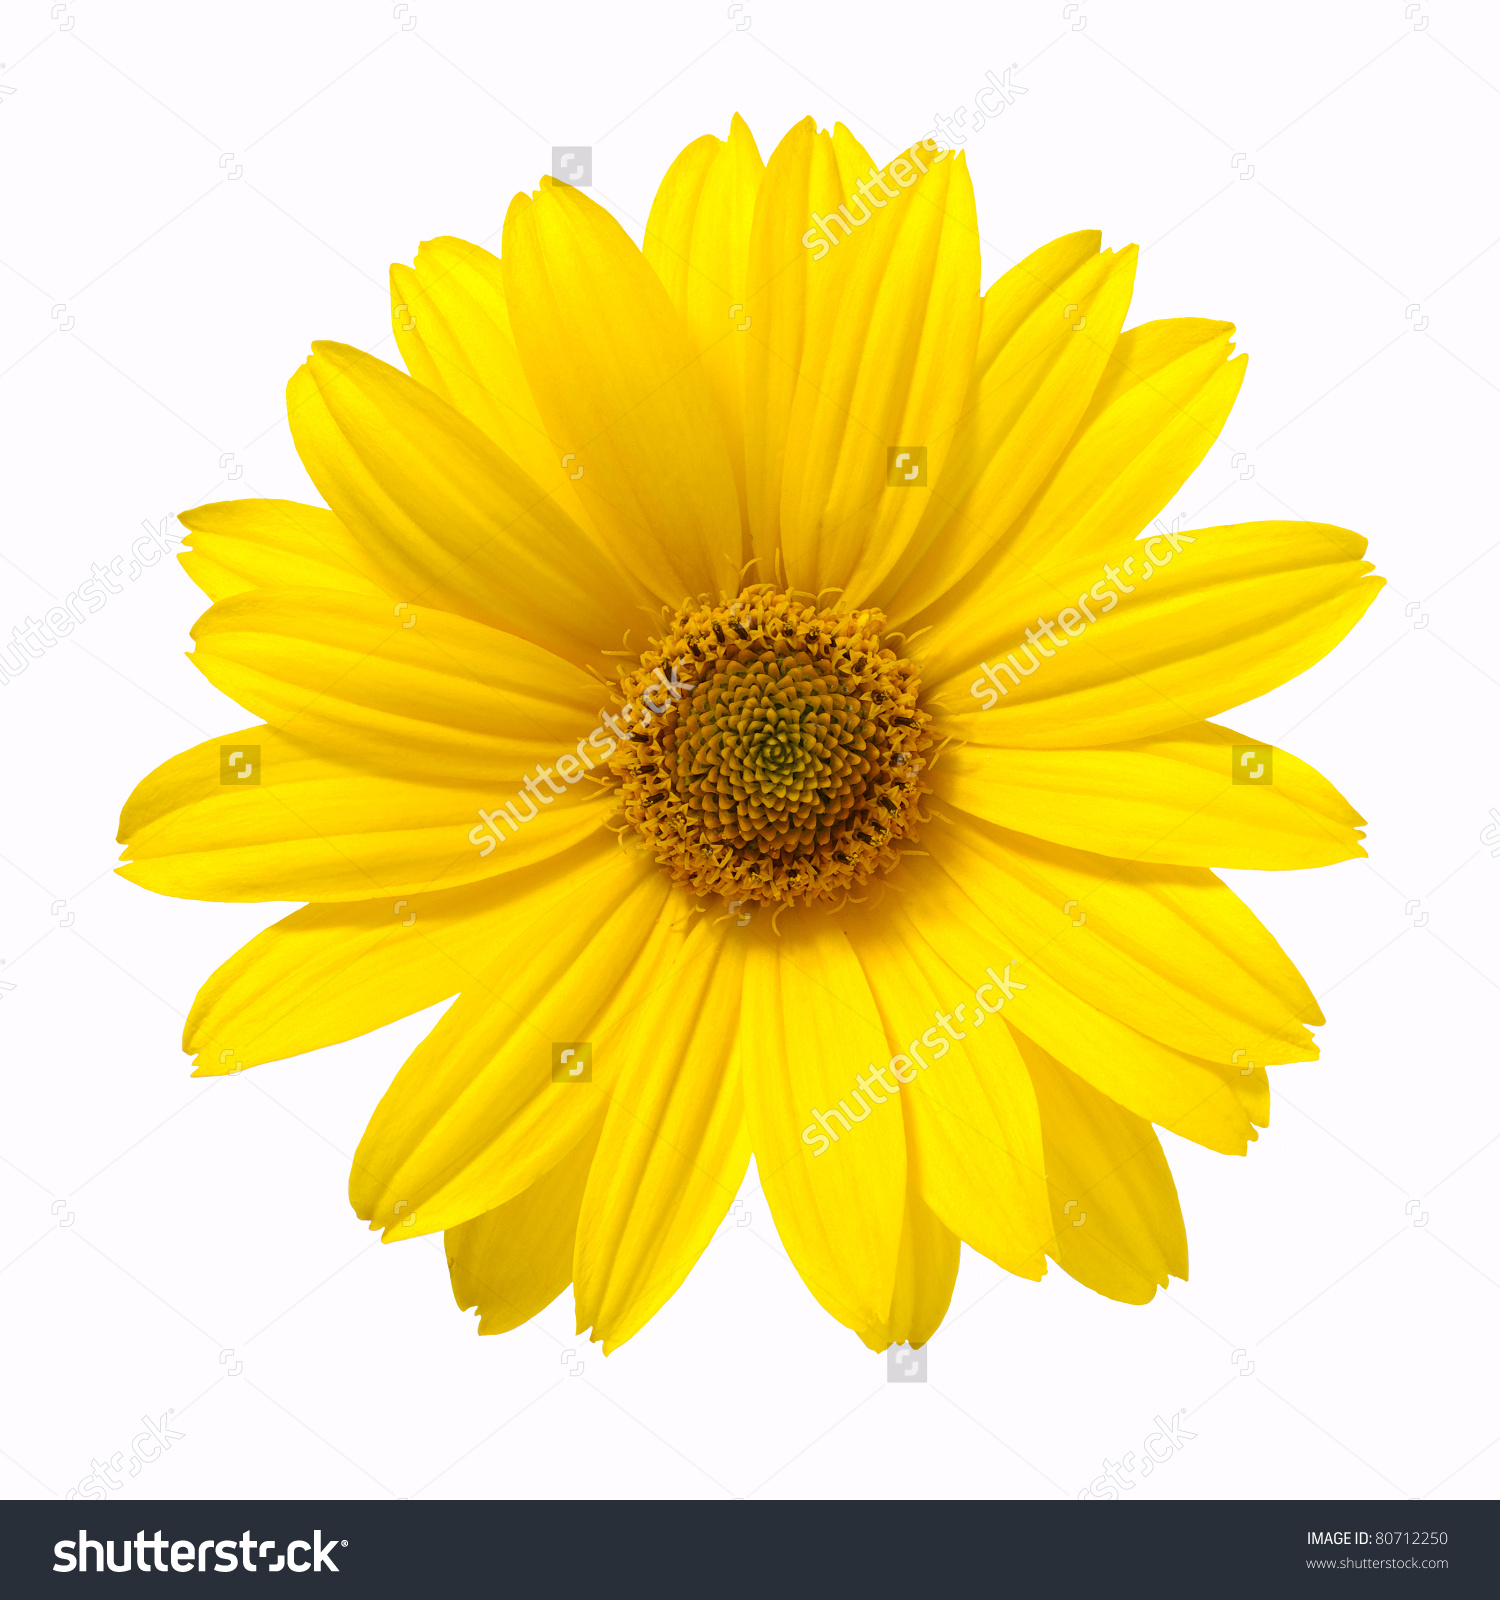 Free photo yellow flower yellow plant bloom non commercial yellow flower mightylinksfo